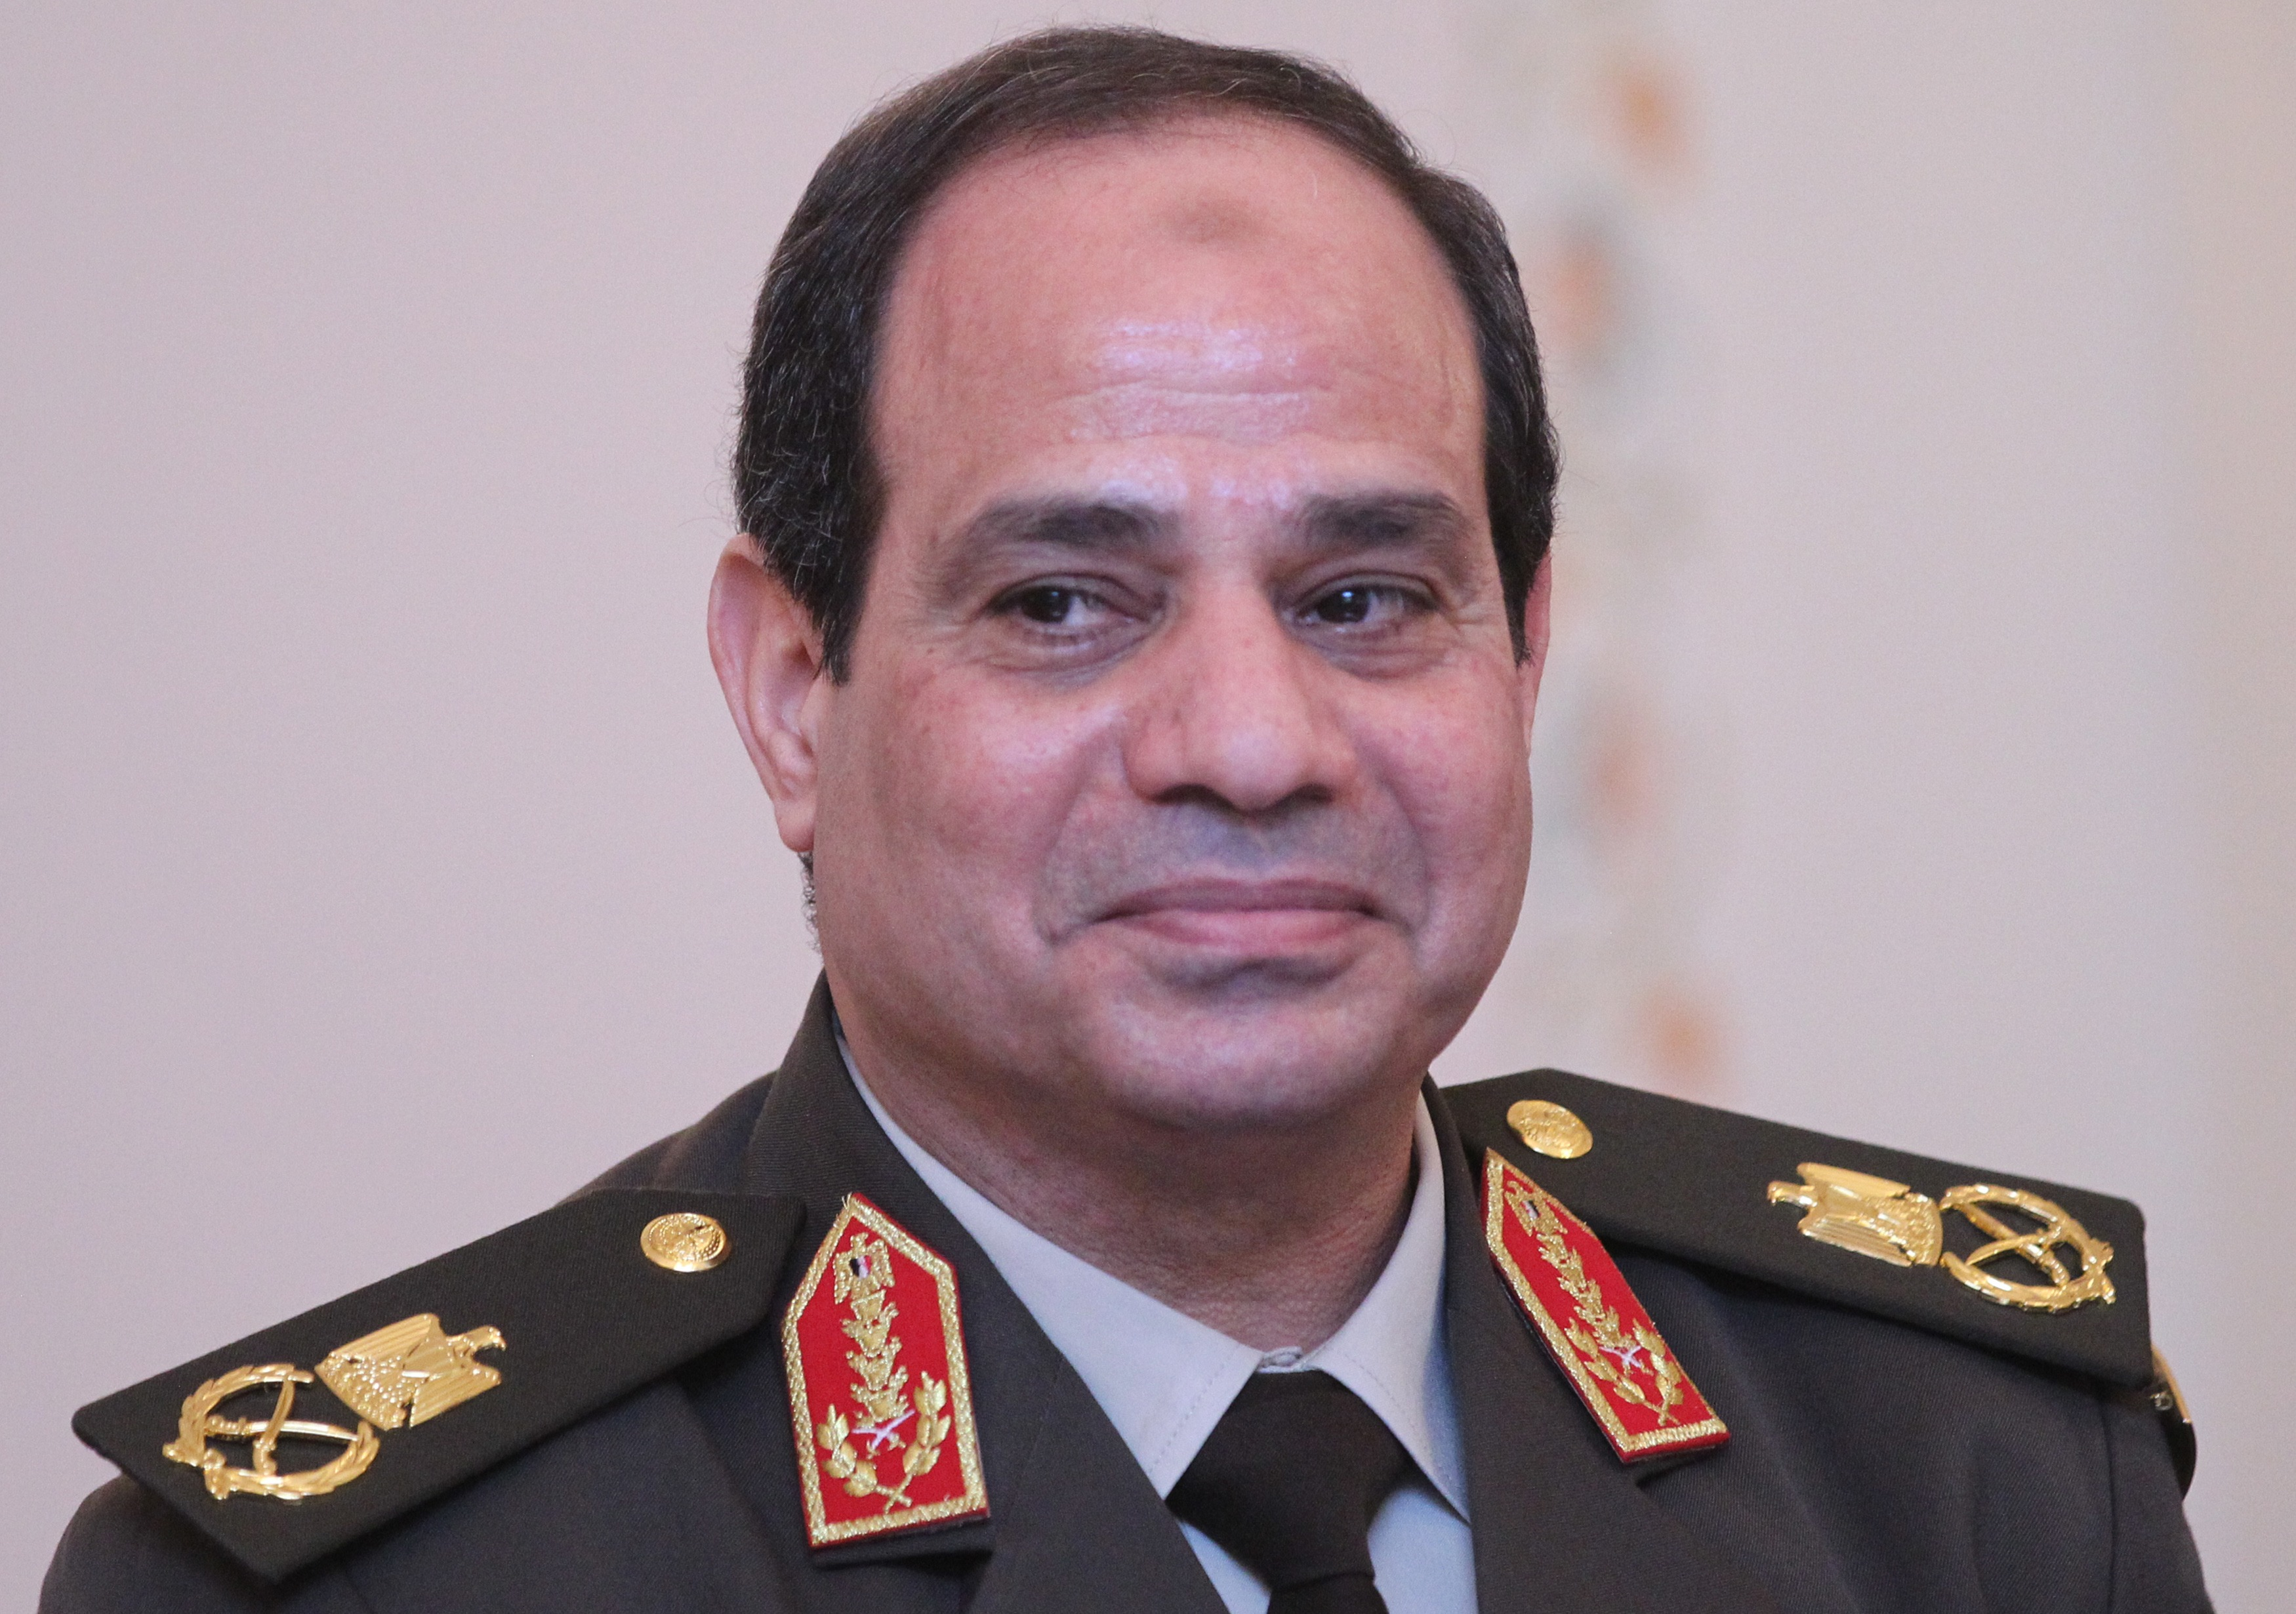 Today's vote may give al-Sisi power to  rule till 2030